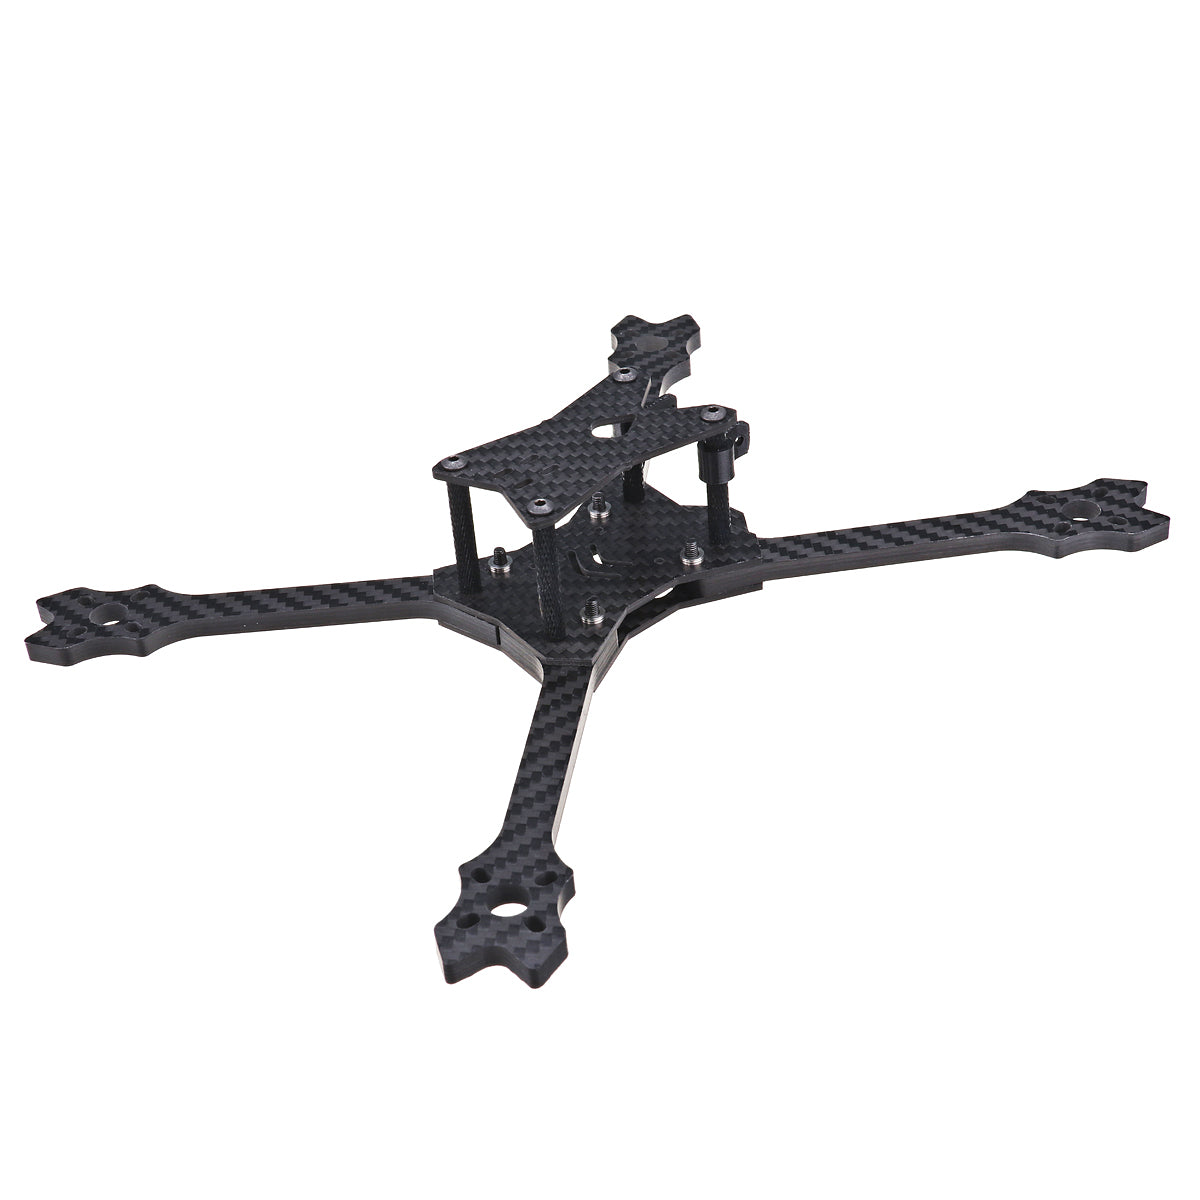 FPV Racing Frame Kit 5mm Arm Plate for RC Drone URUAV UF5 5 Inch 220mm Carbon Fiber